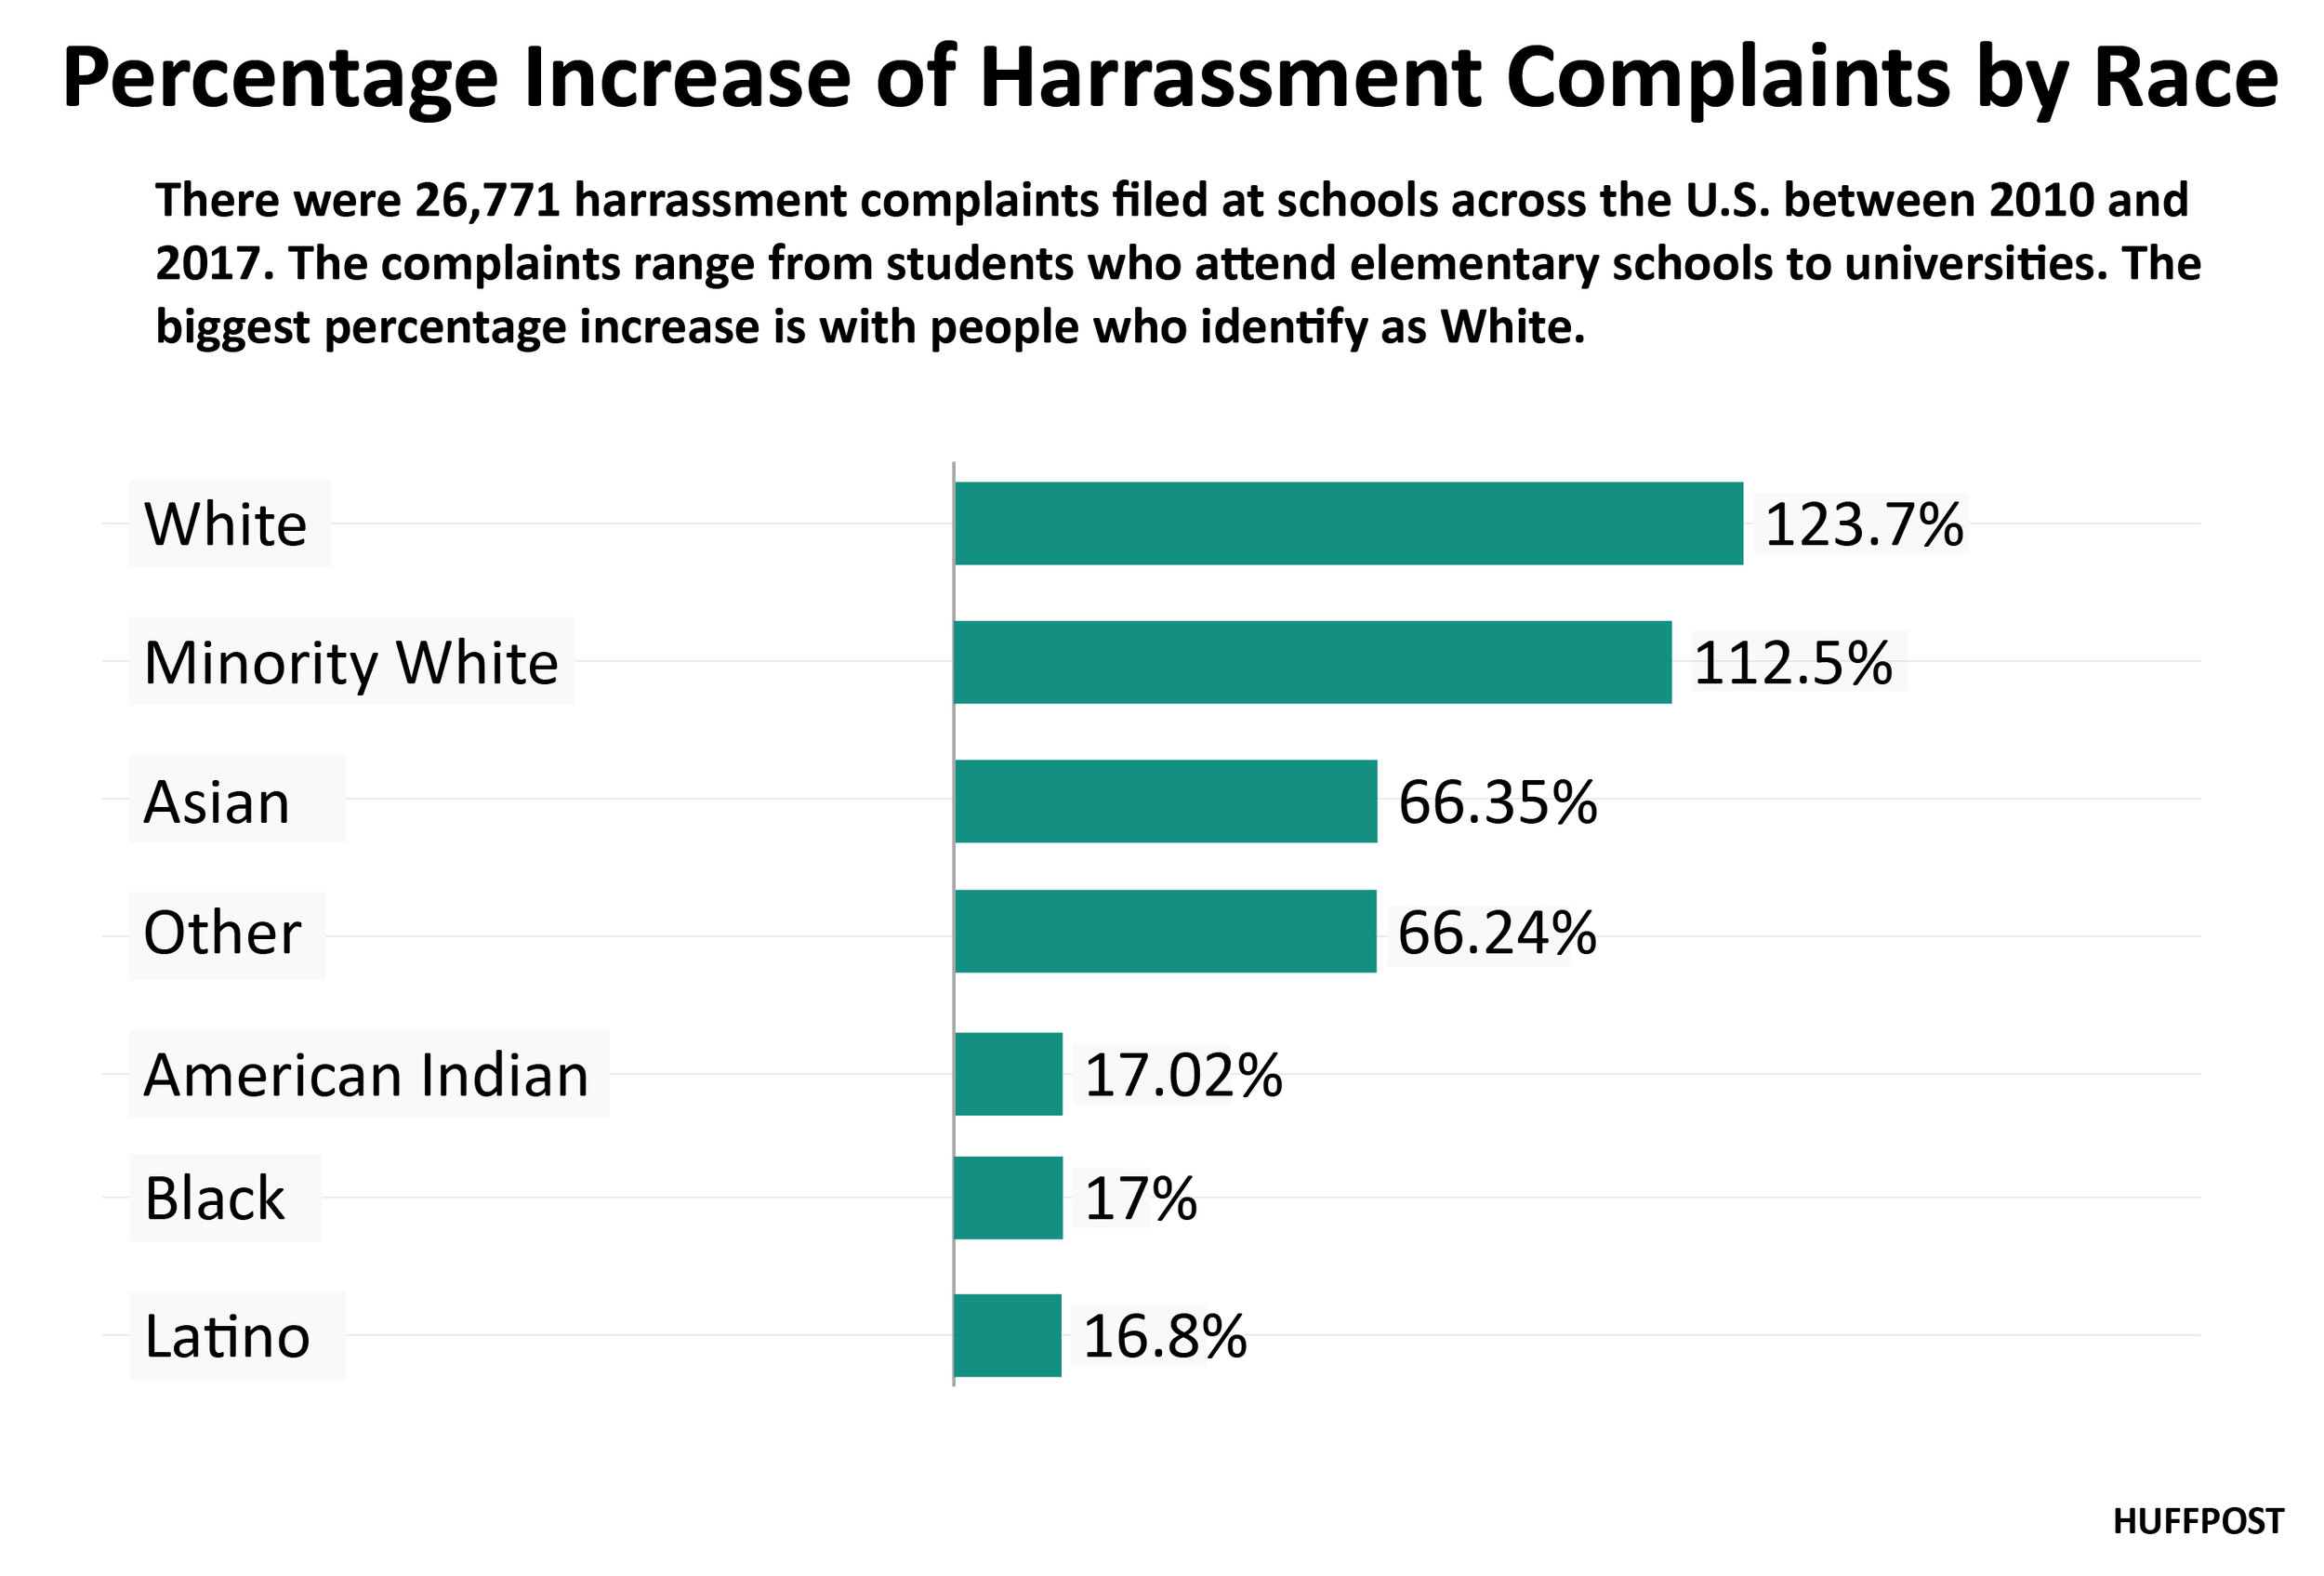 Percentage+of+Complaint+Increase+by+Race-01.jpg